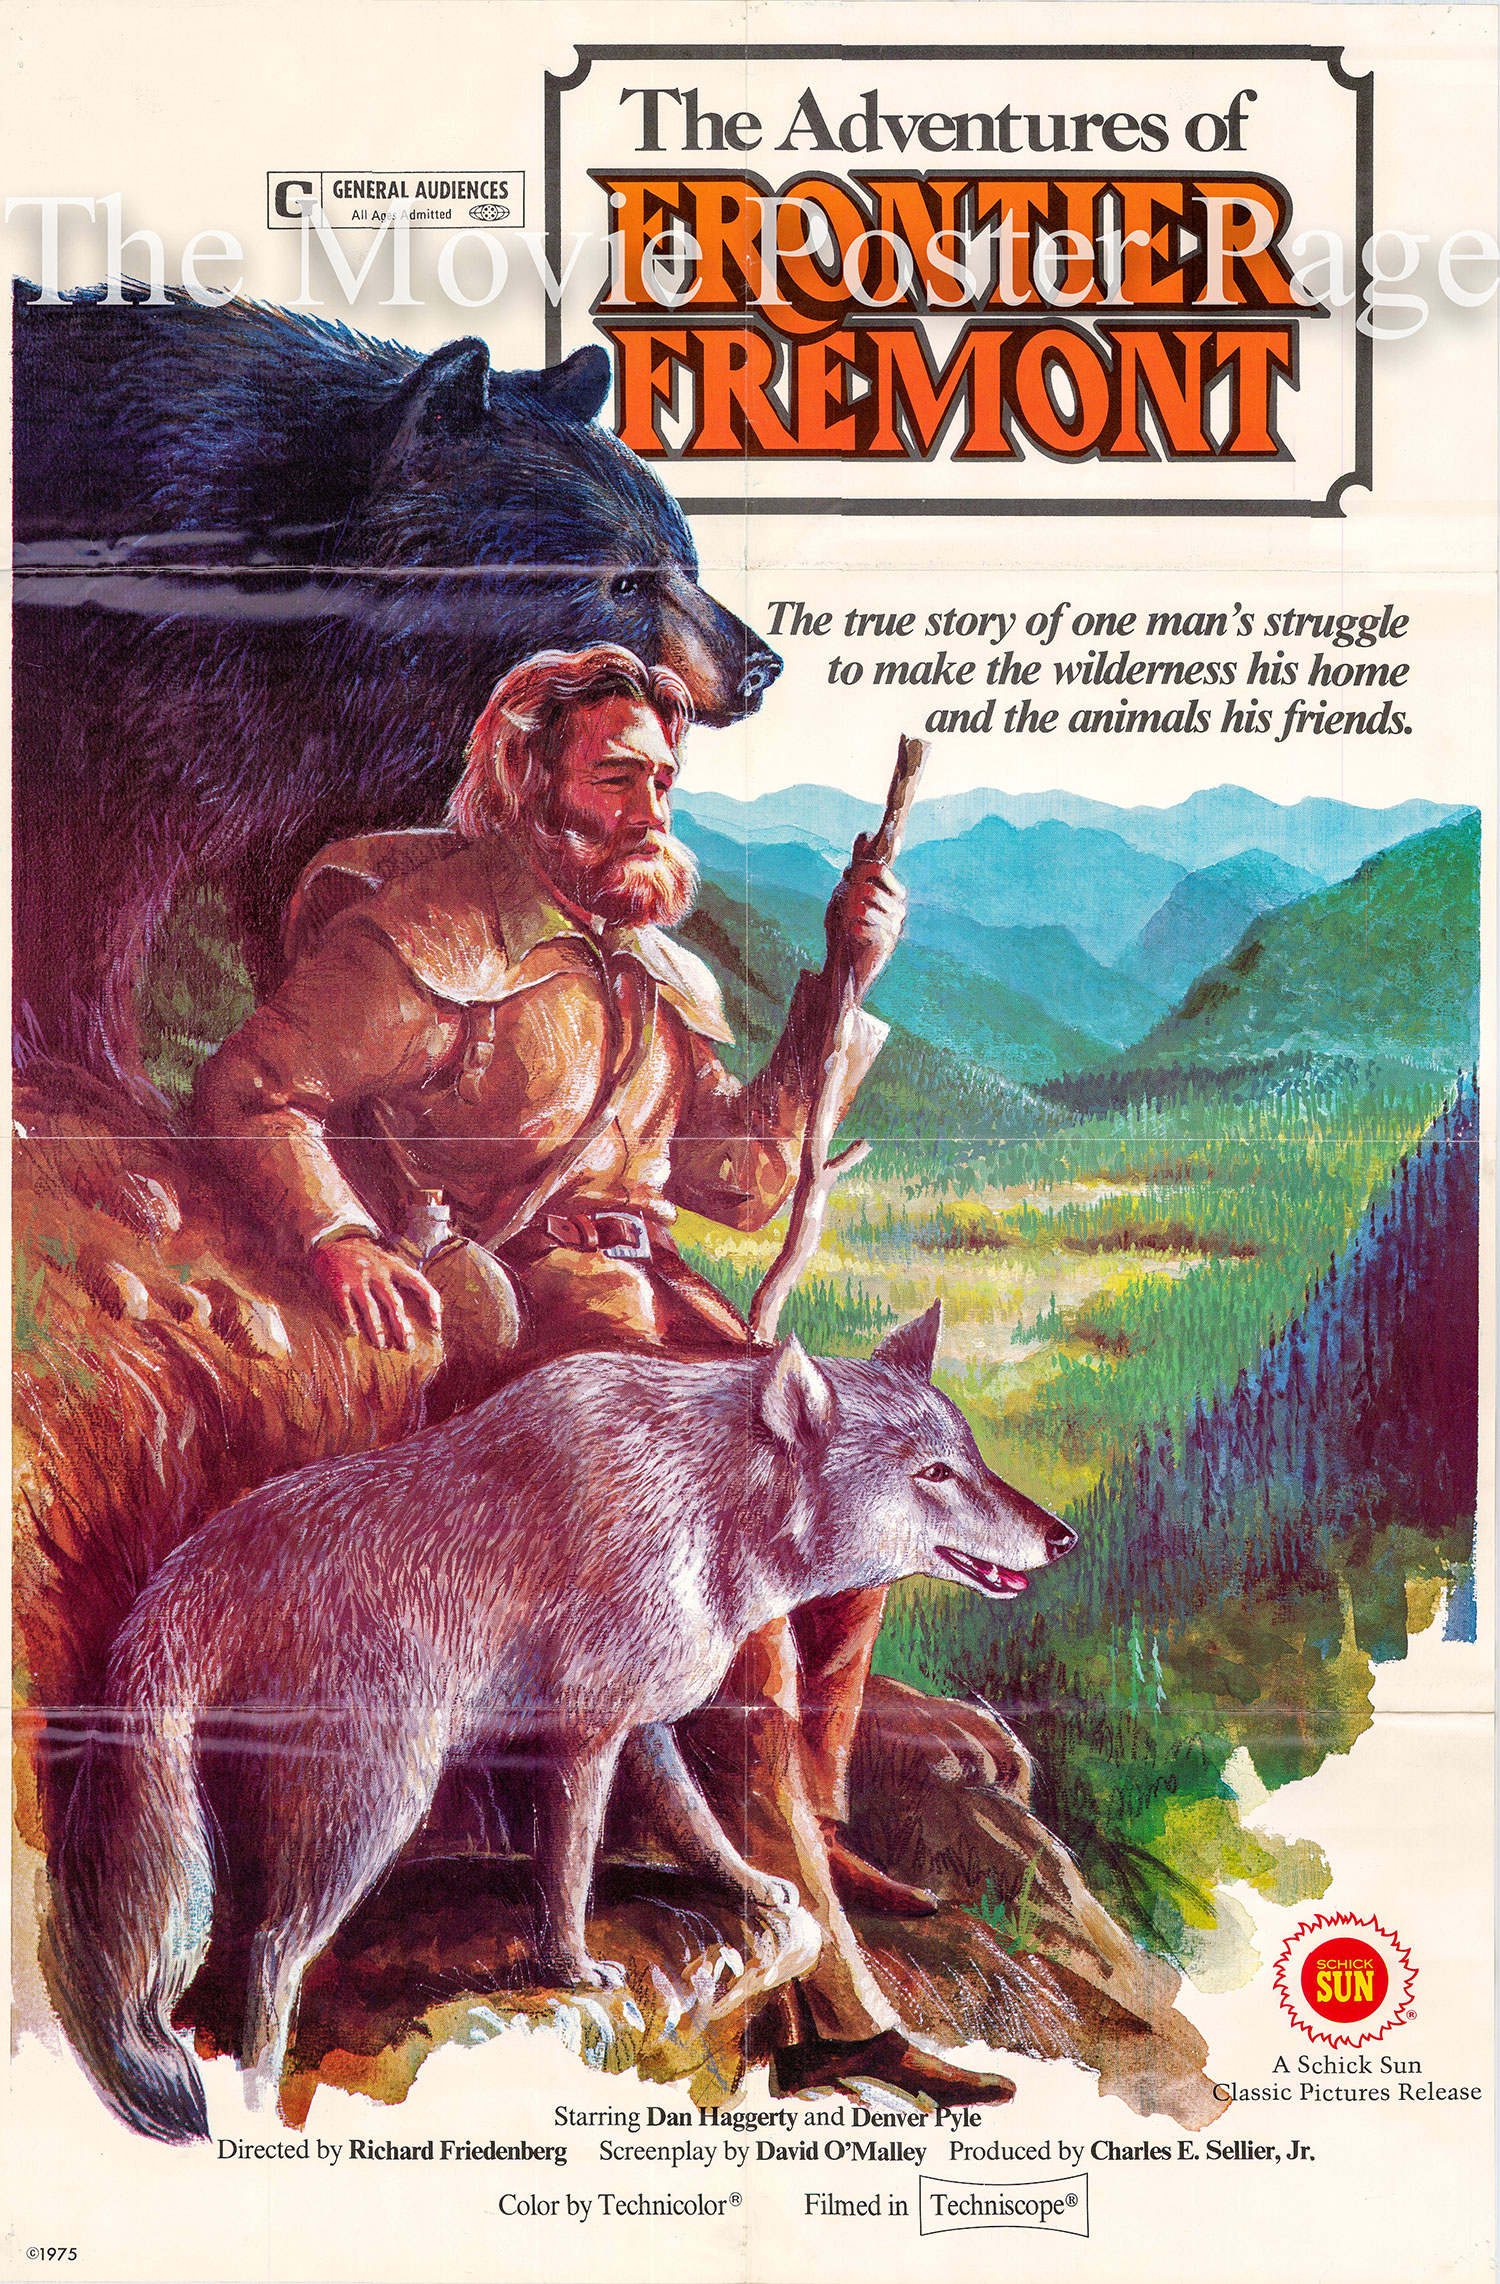 Pictured is a US one-sheet promotional poster for the 1976 Richard Friedenberg film The Adventures of Frontier Fremont starring Dan Haggerty as Frontier Fremont.